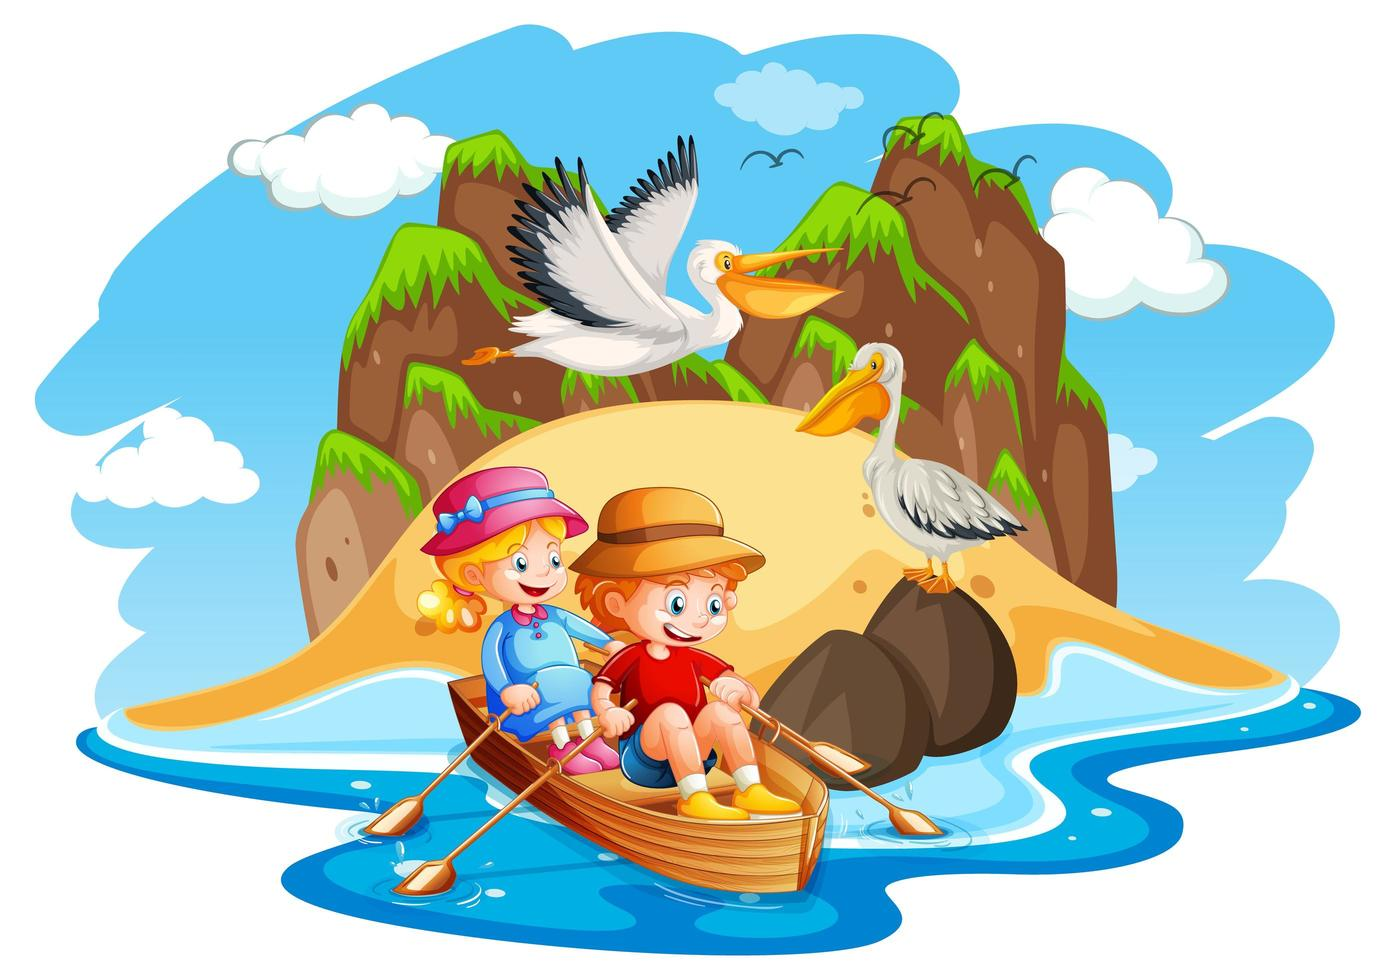 Children row boat beach scene vector